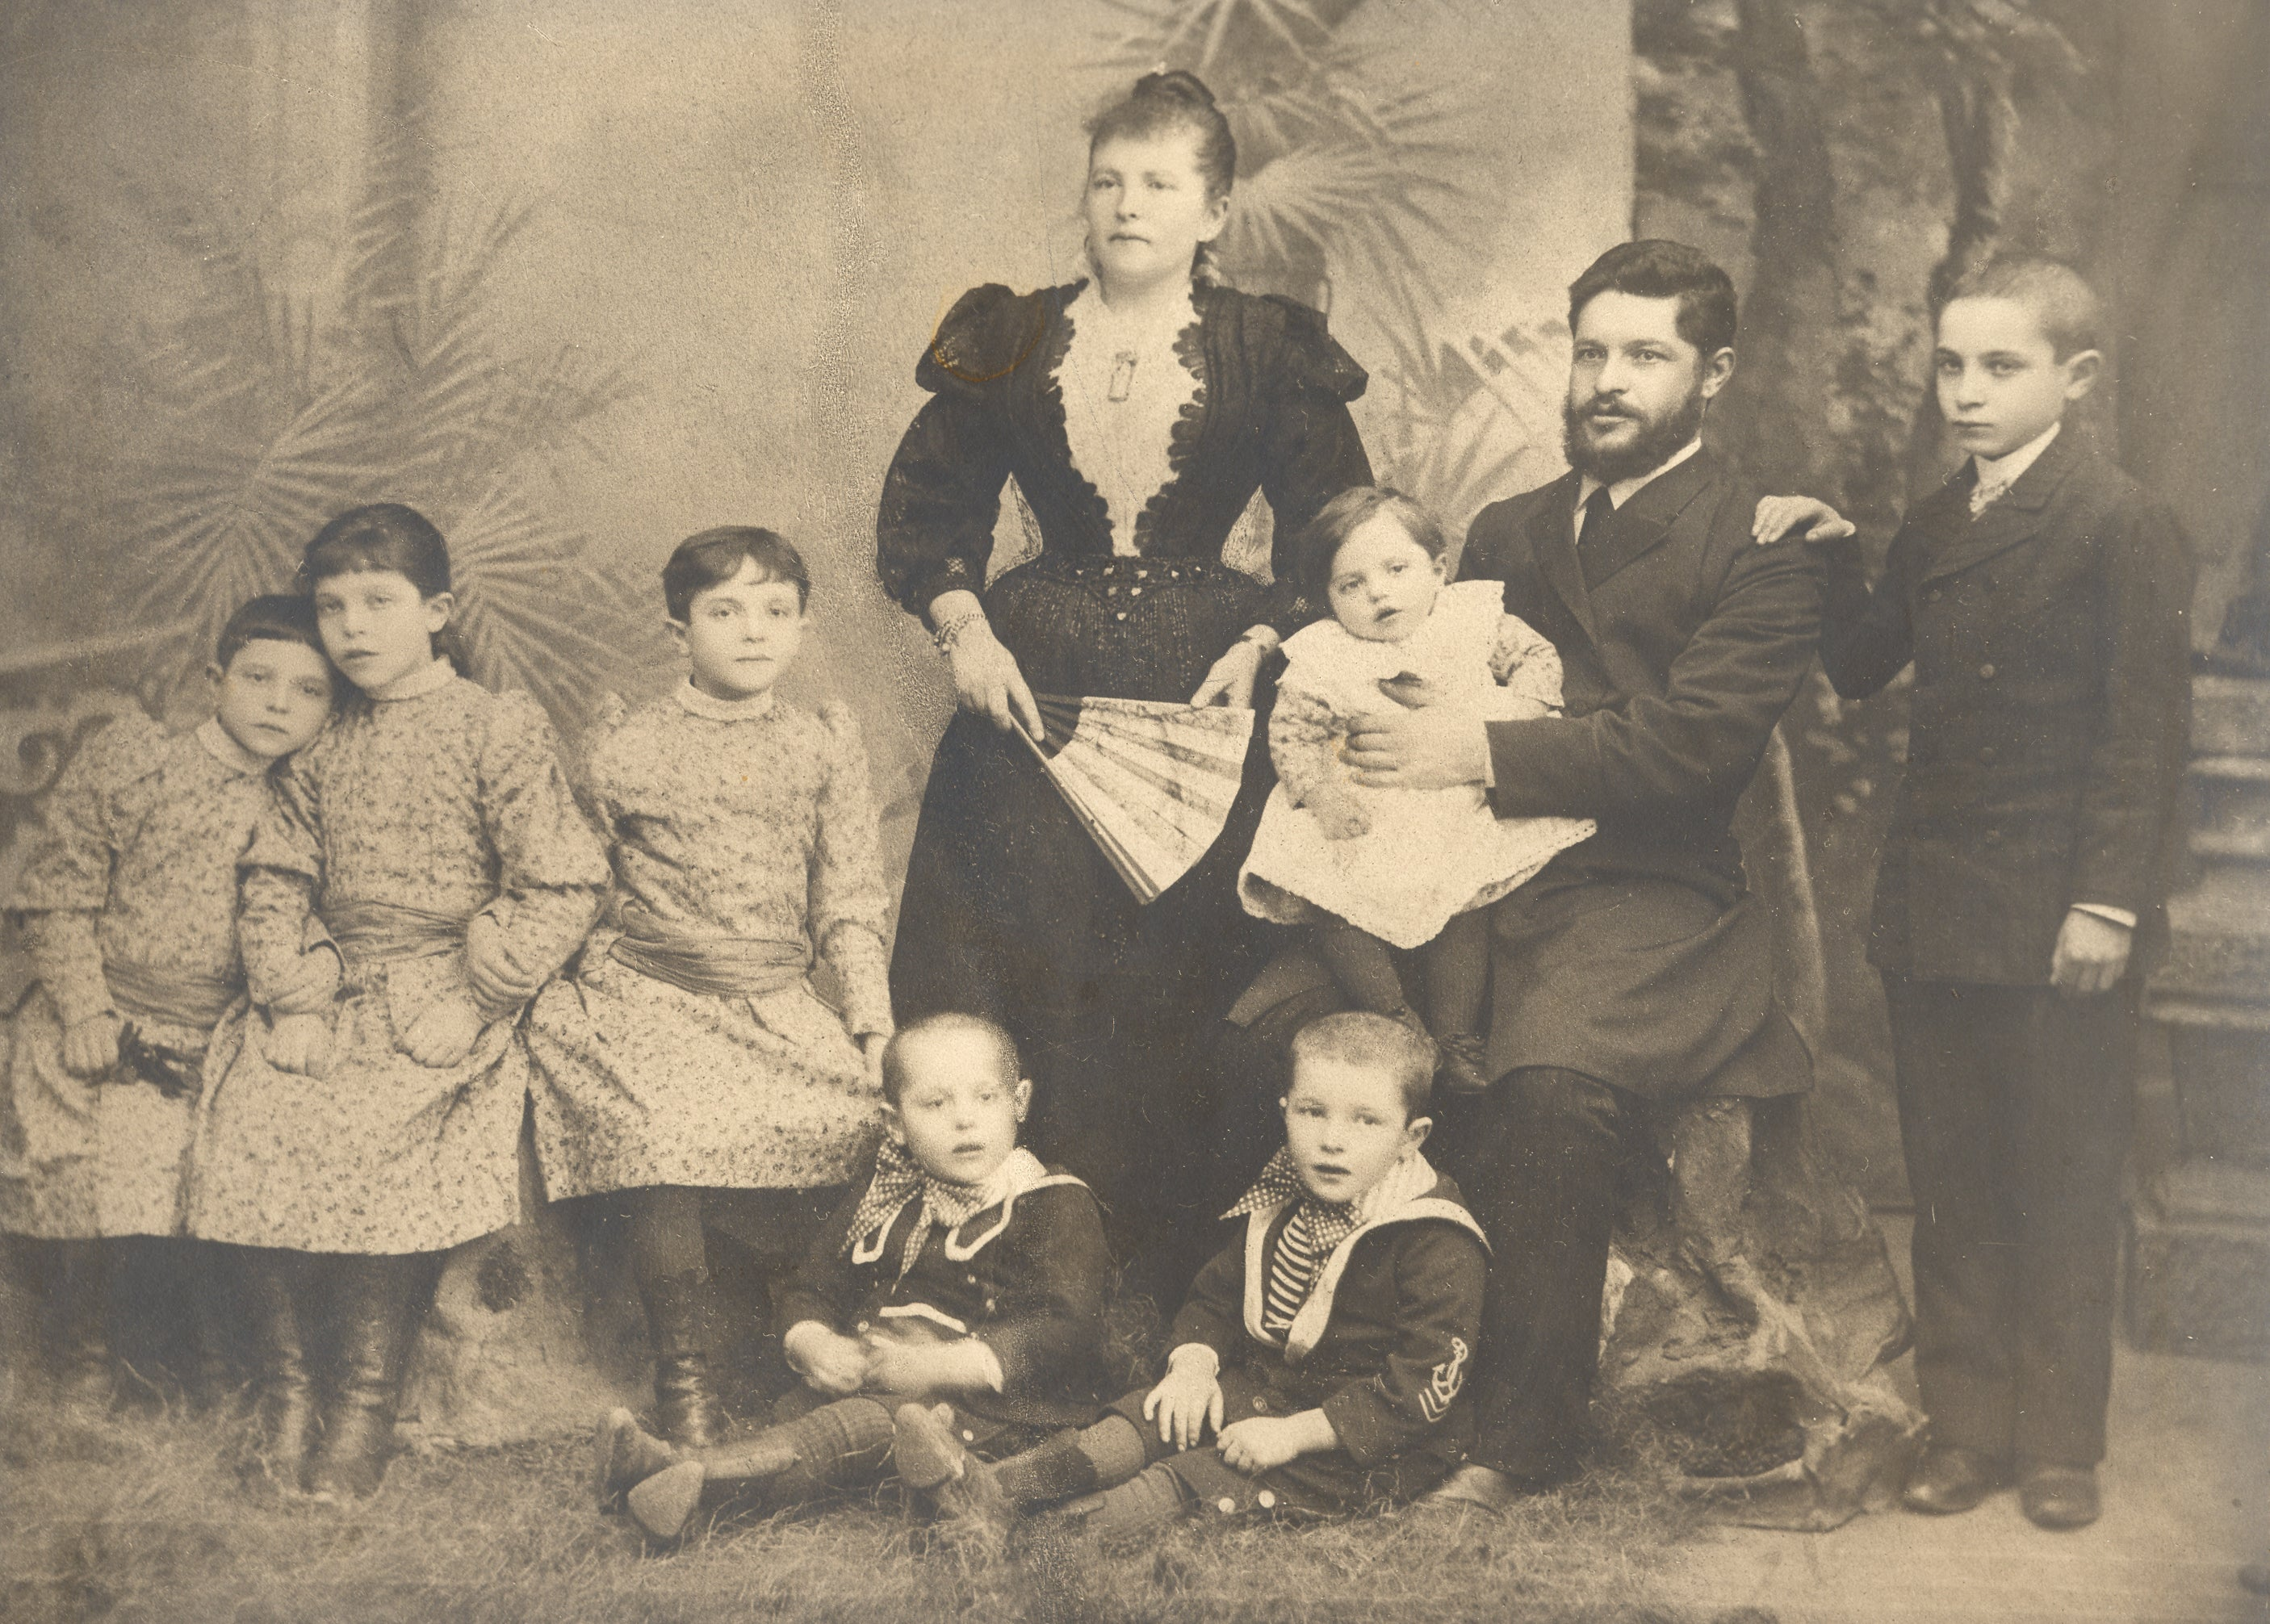 black and white photo of the Wein family: the father sitting holding a baby and the oldest son's hand on his shoulder, the mother standing with a fan, two toddlers at her feet, and three young girls sitting to the left of her